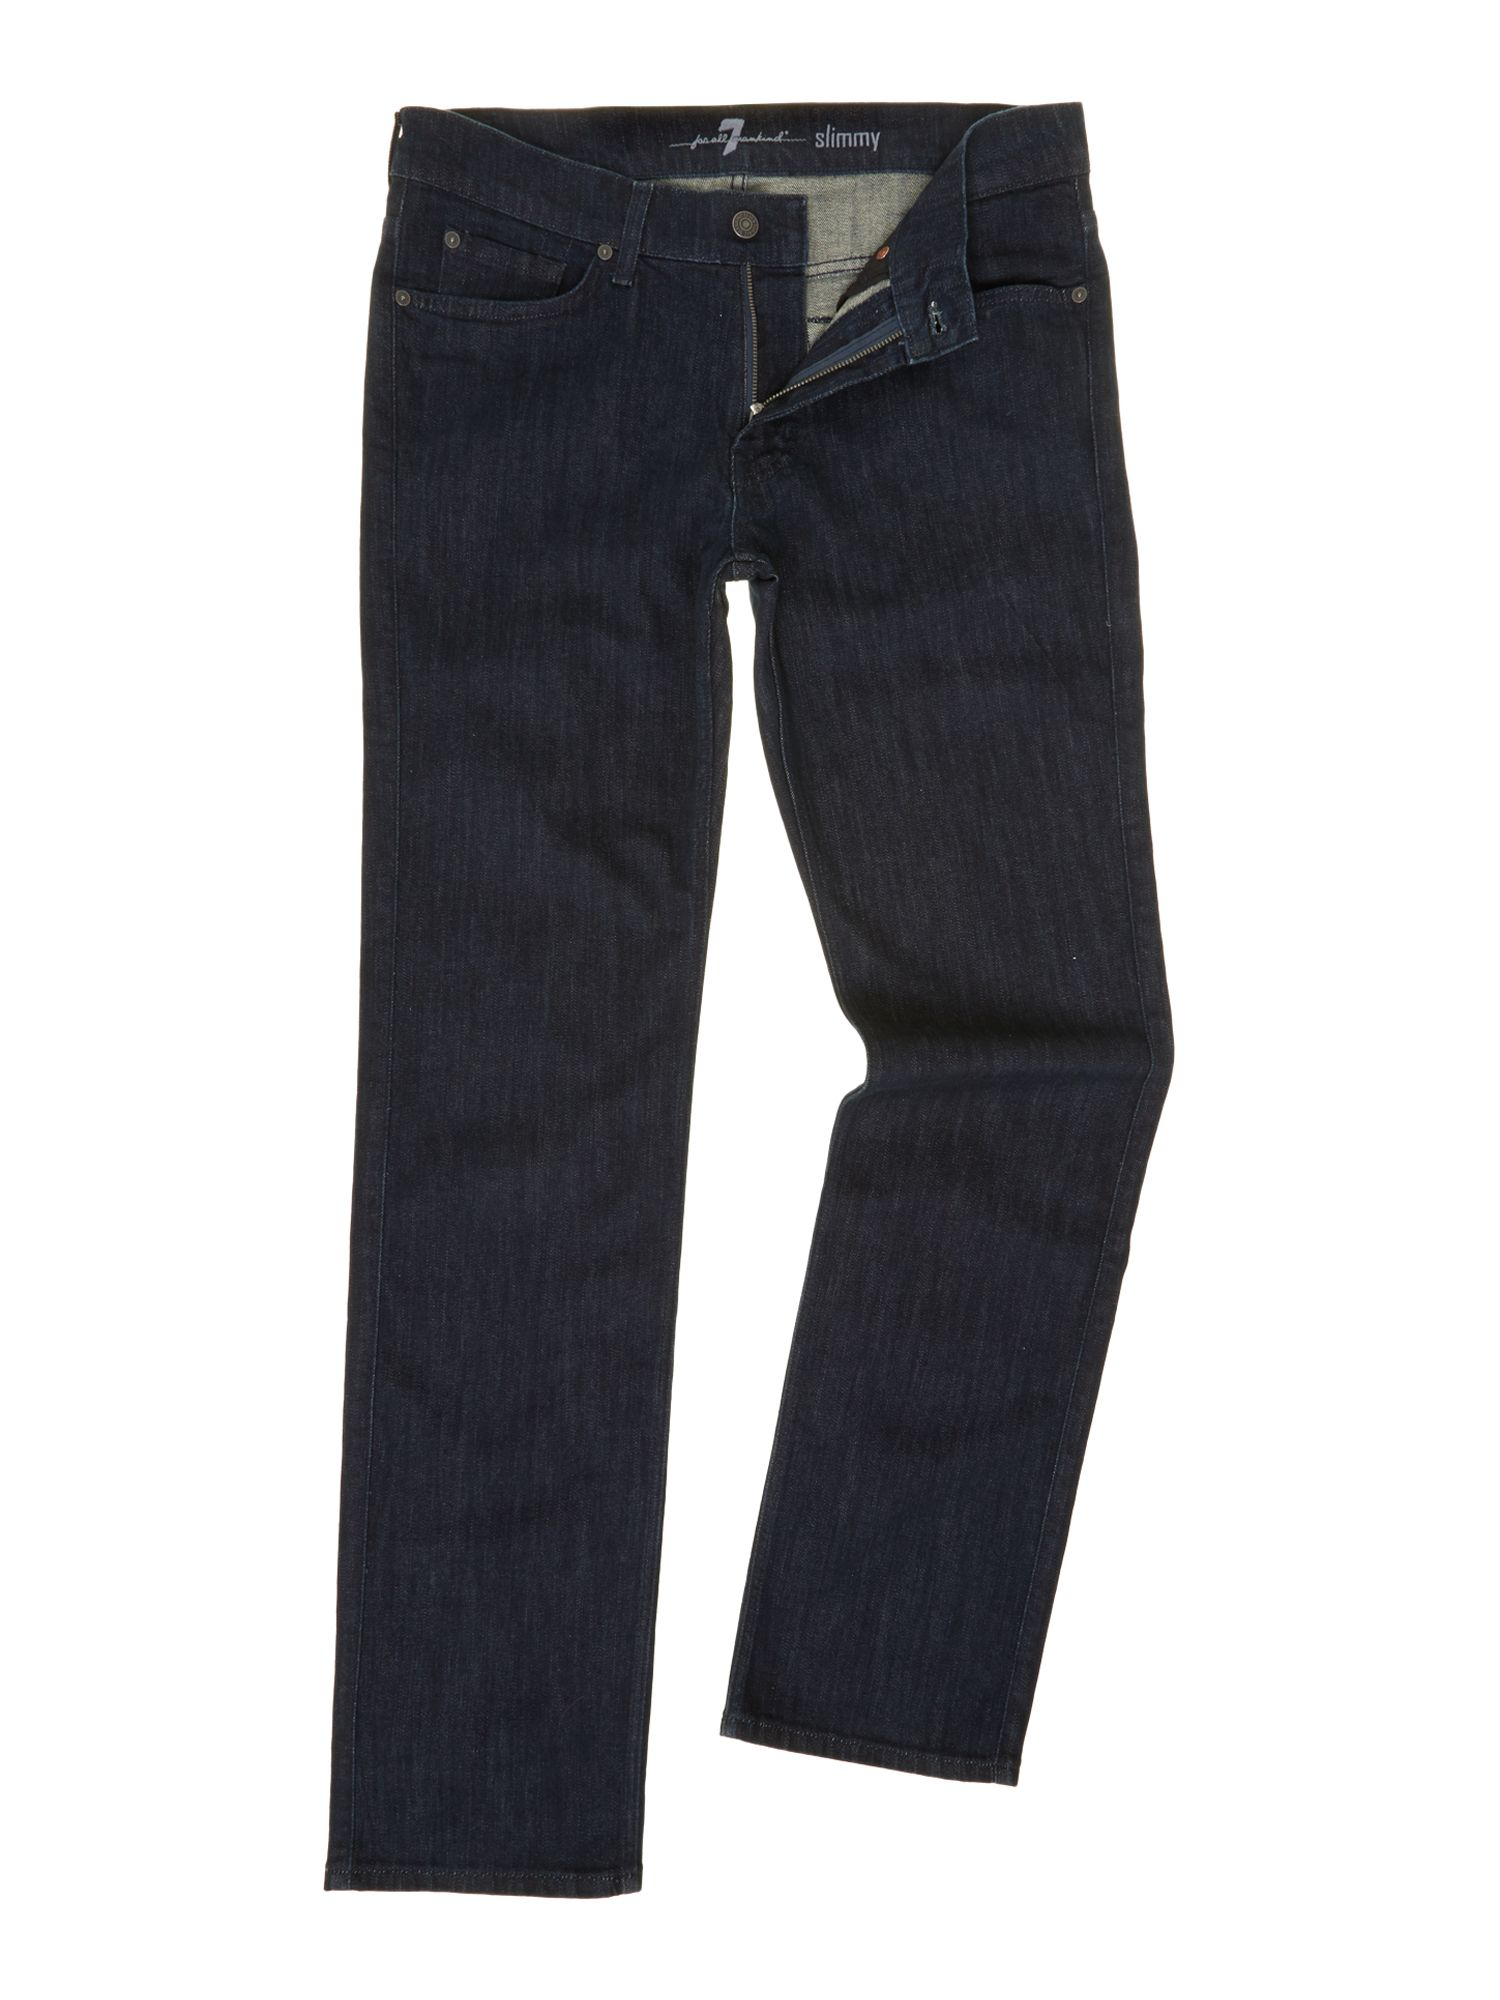 Slimmy luxe perf dark wash jean